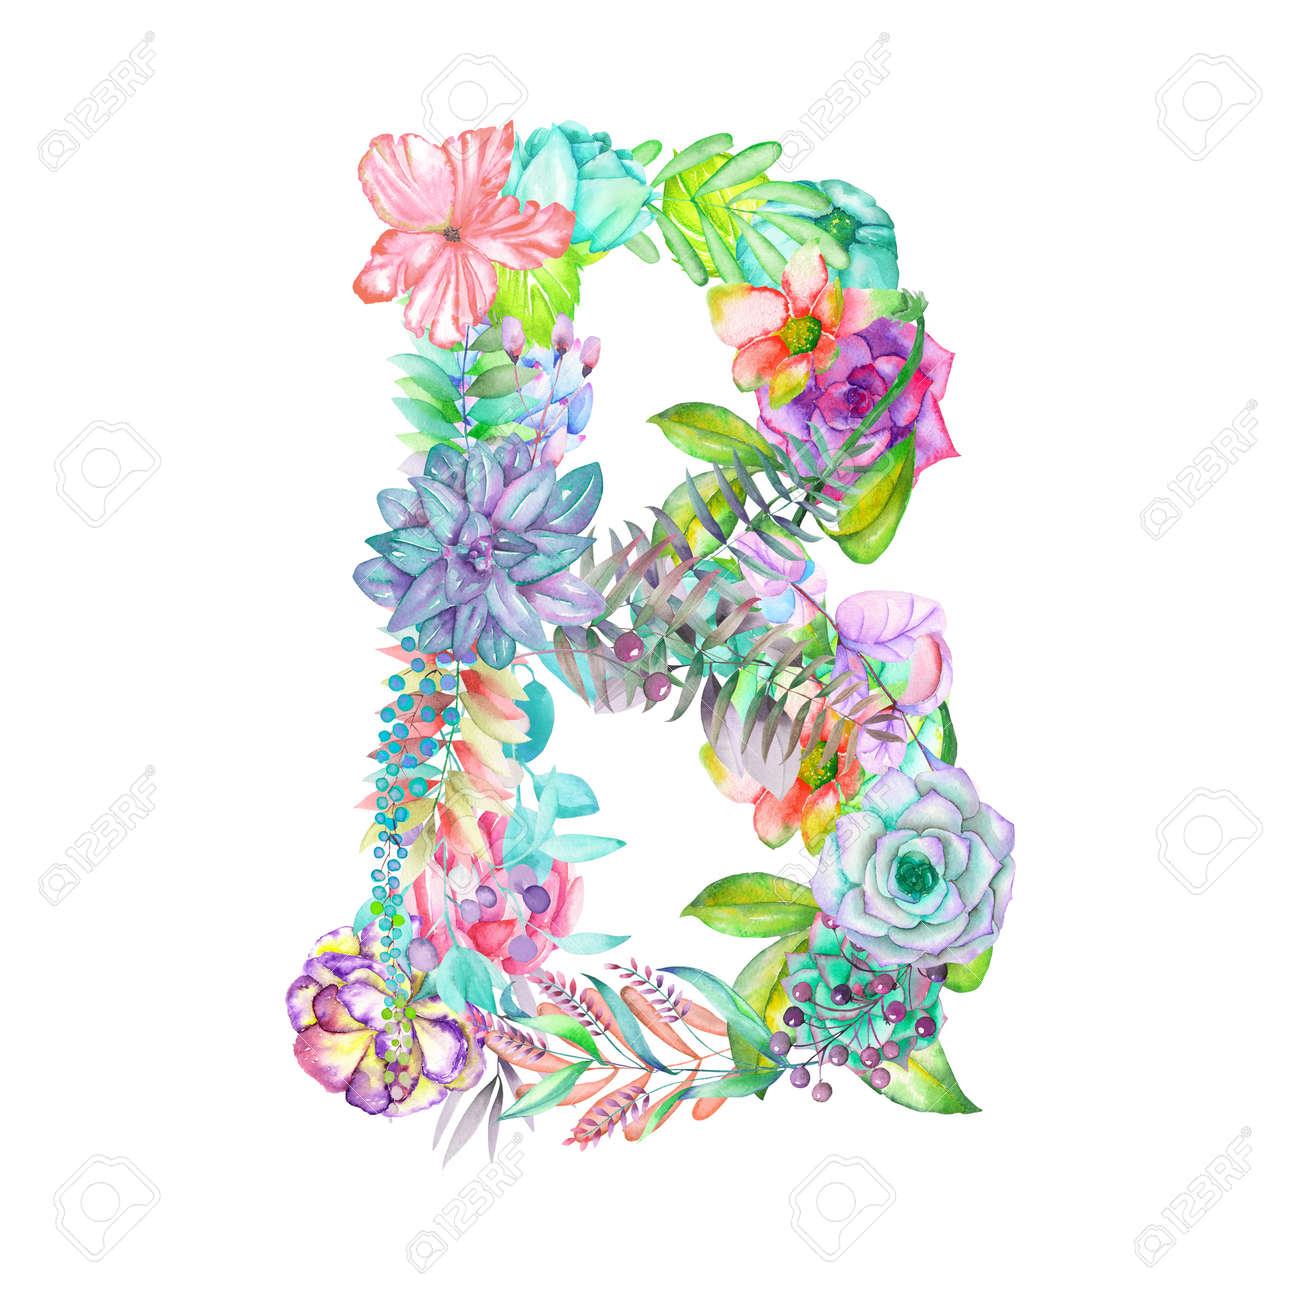 Capital Letter B Of Watercolor Flowers Isolated Hand Drawn On